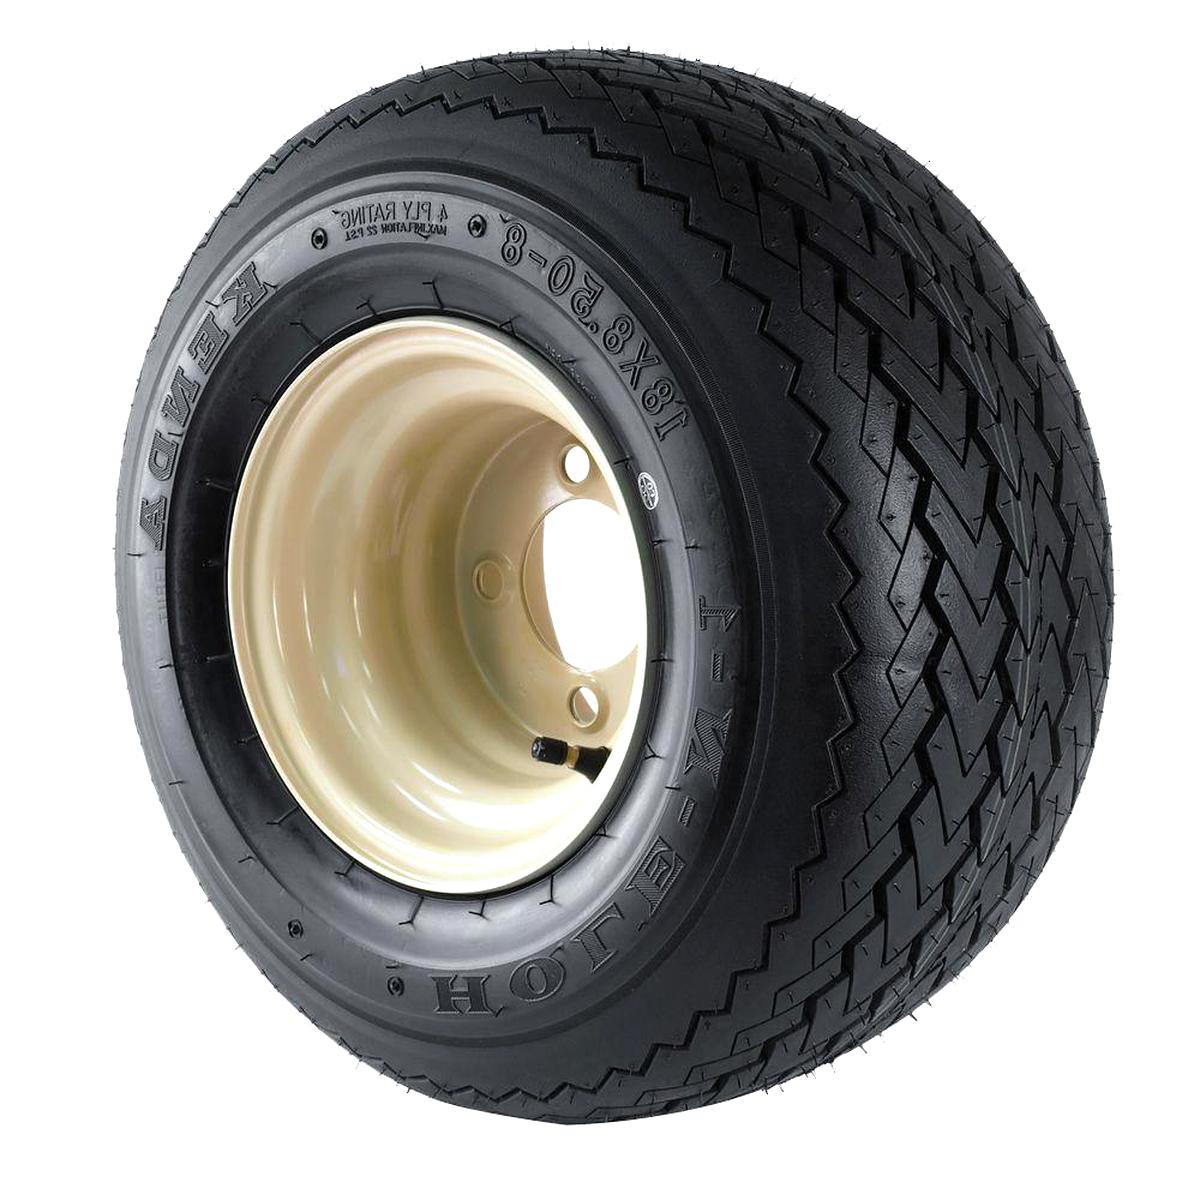 golf cart tires for sale